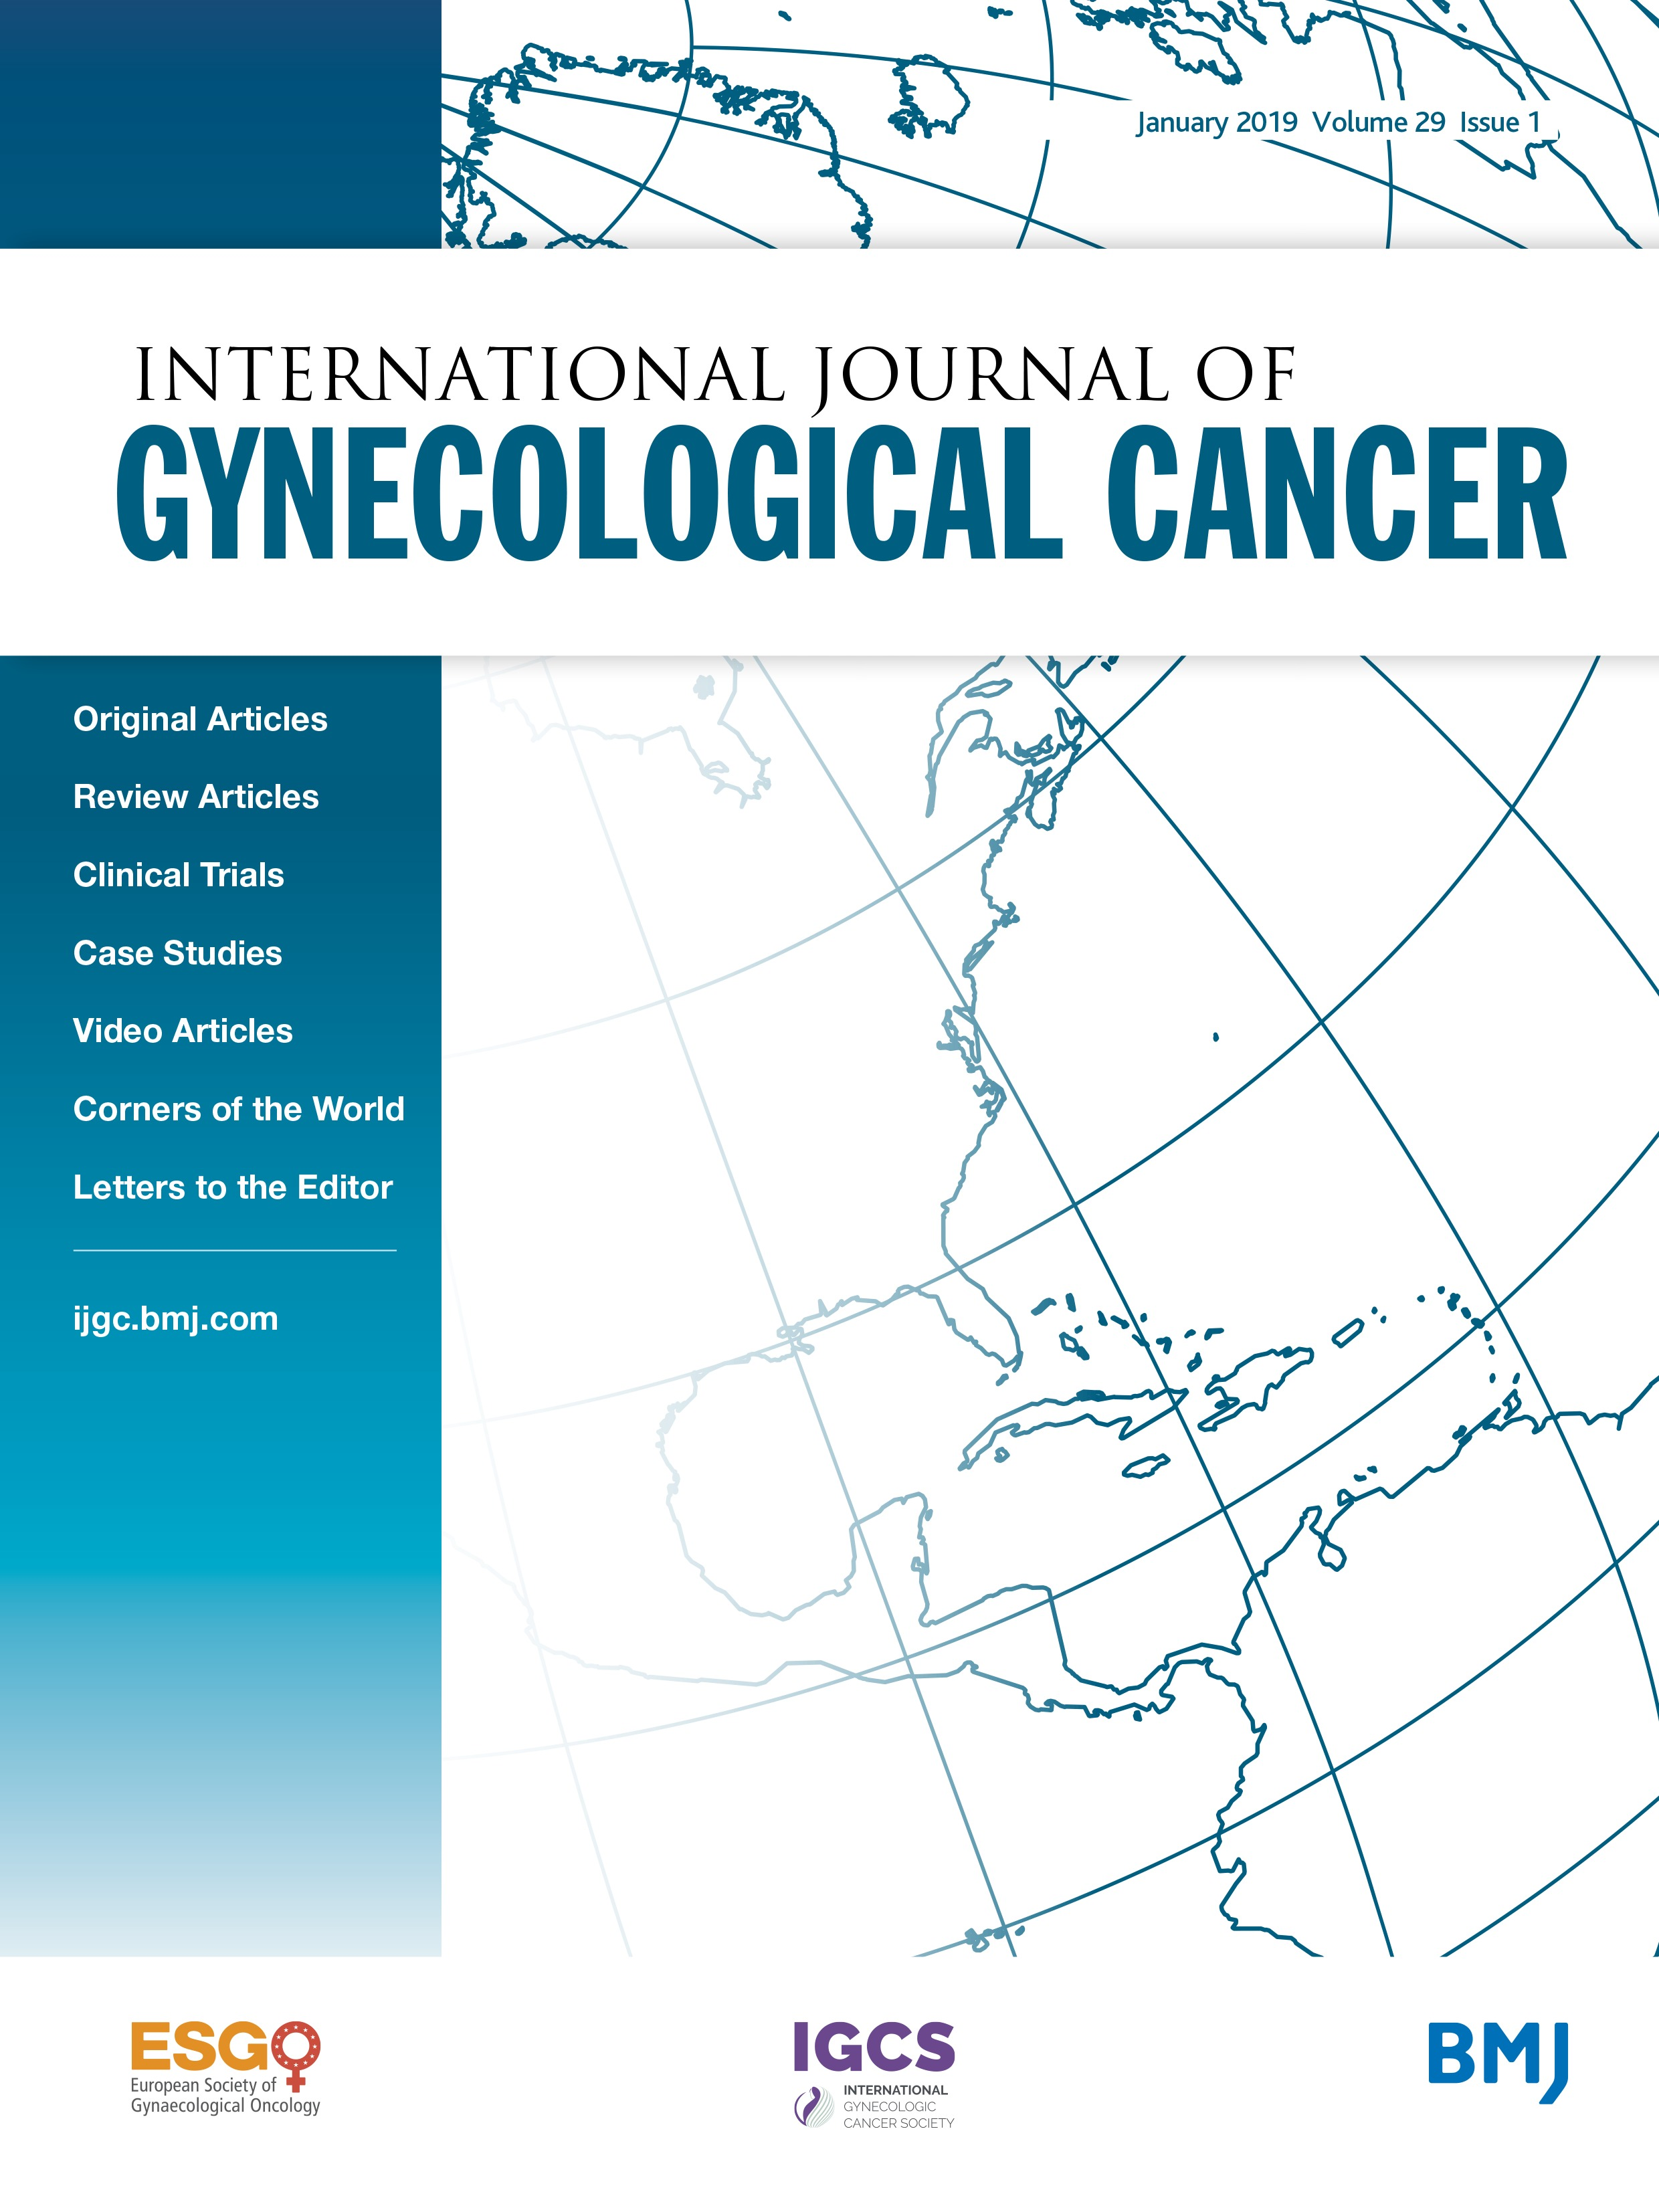 Association Of Metformin Use With Ovarian Cancer Incidence And Prognosis A Systematic Review And Meta Analysis International Journal Of Gynecologic Cancer